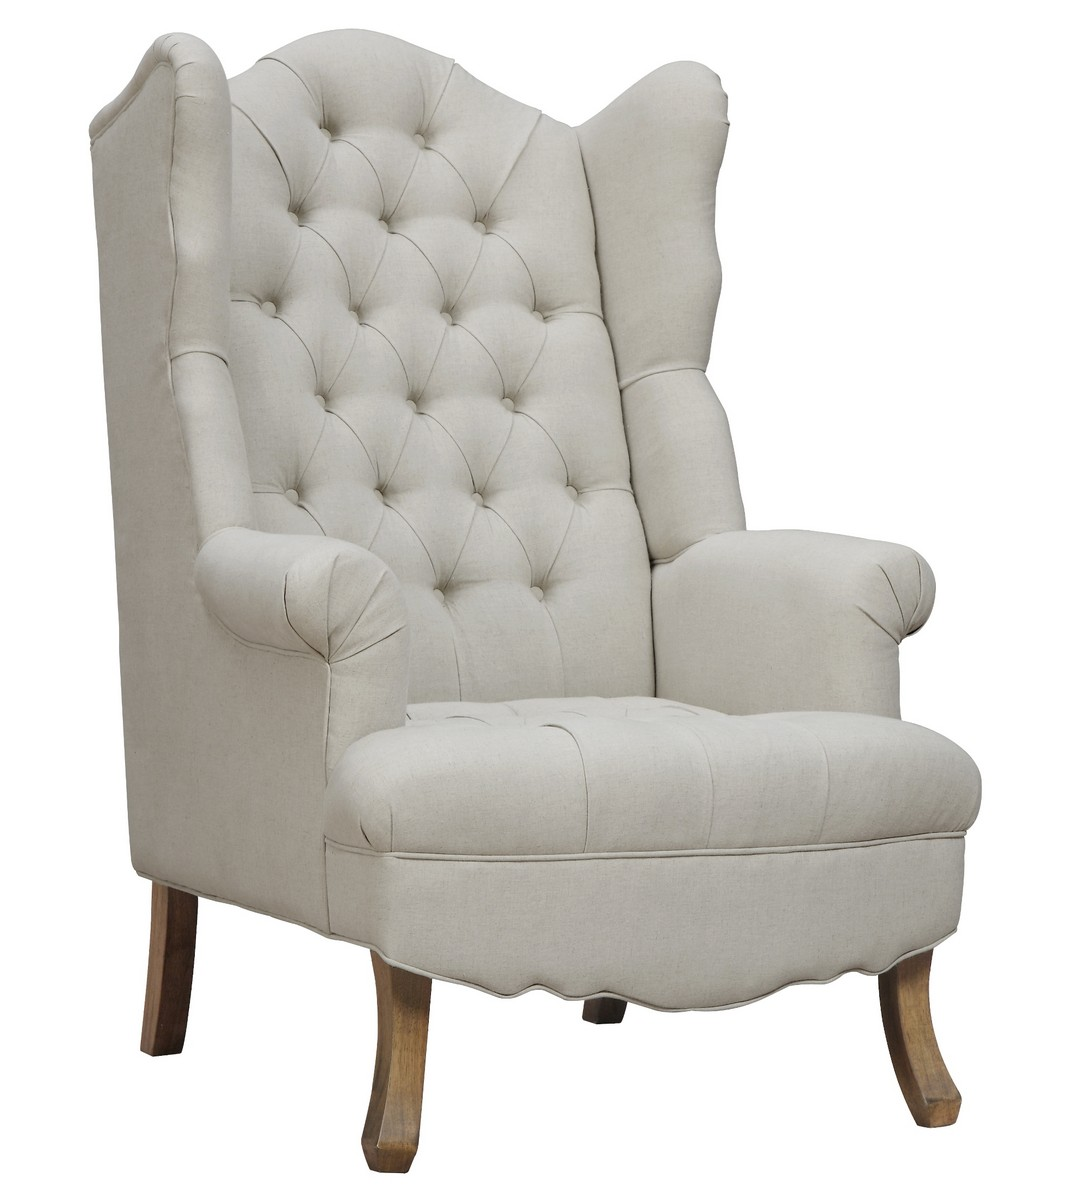 TOV Furniture Madison Beige Linen Wing Chair